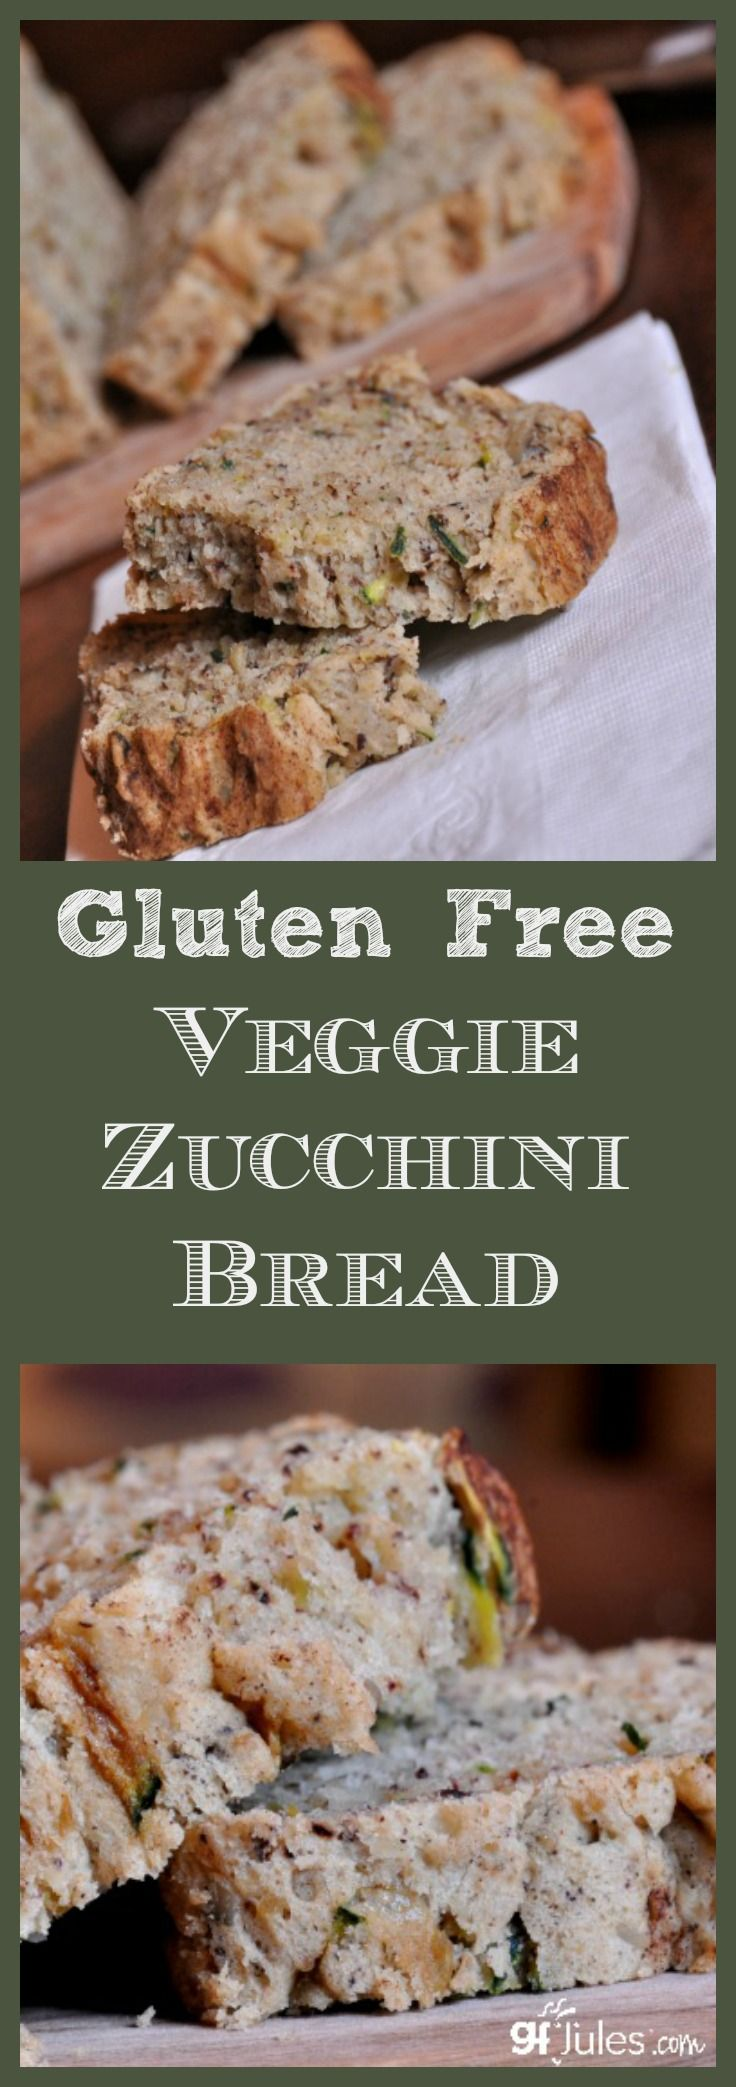 Gluten Free Veggie Zucchini Bread - made with secret healthy ingredients!  gfJules